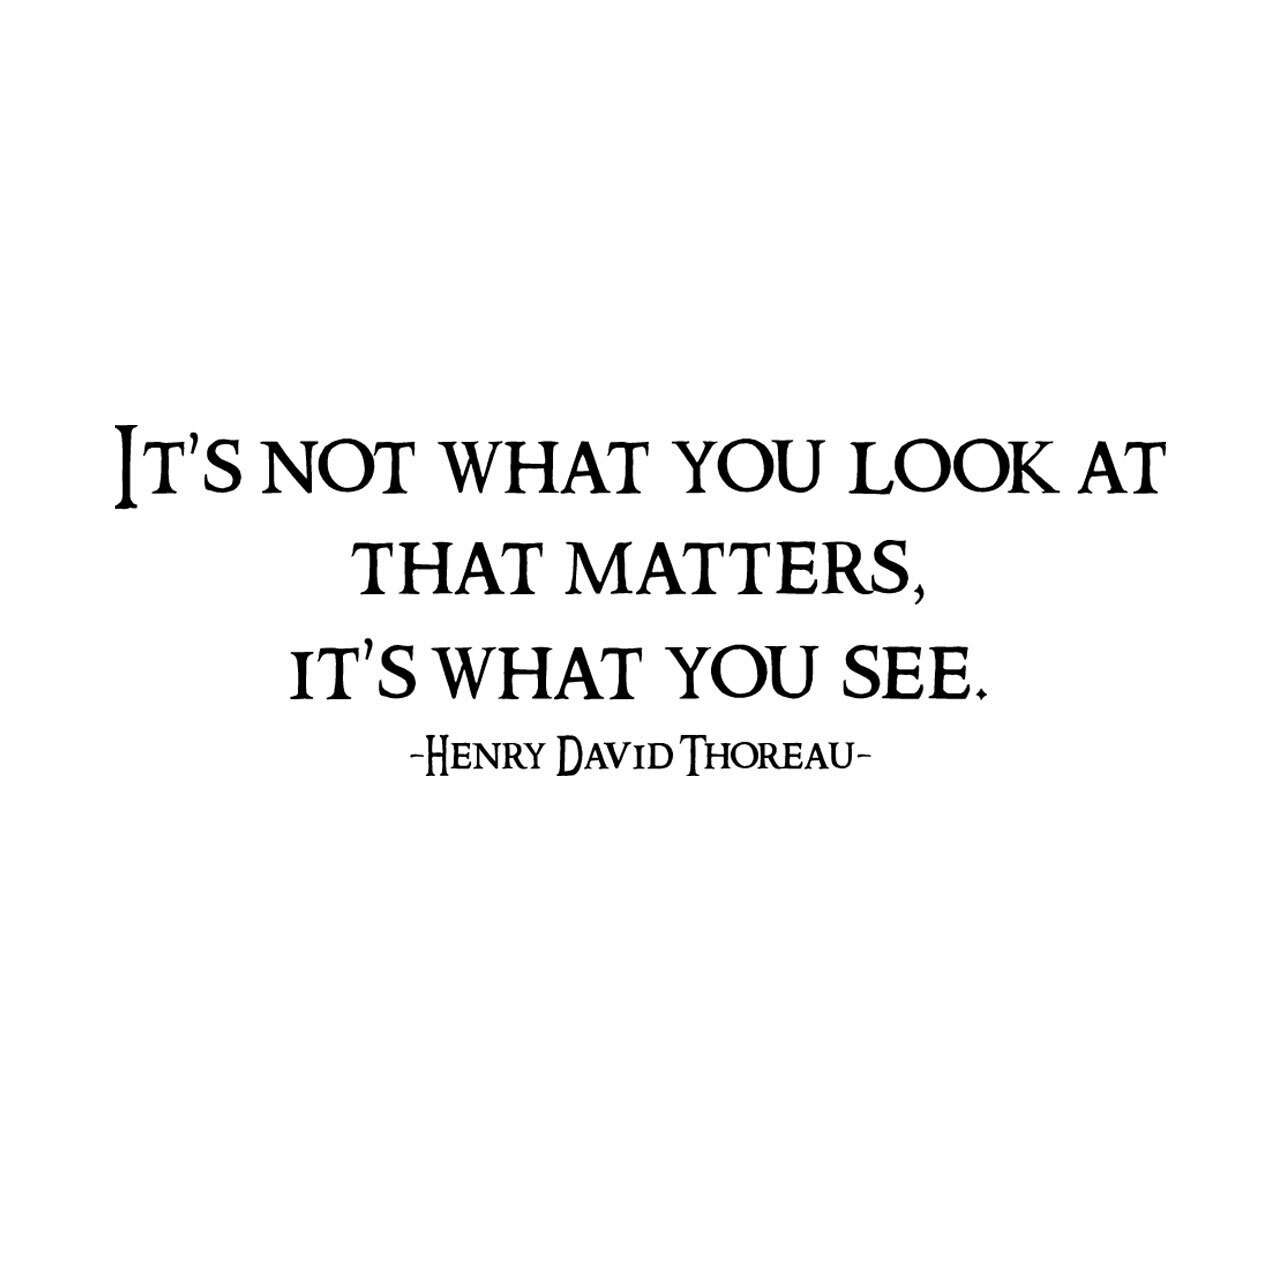 It's not what you look at it's what you see -Henry David Thoreau written in black on a white background